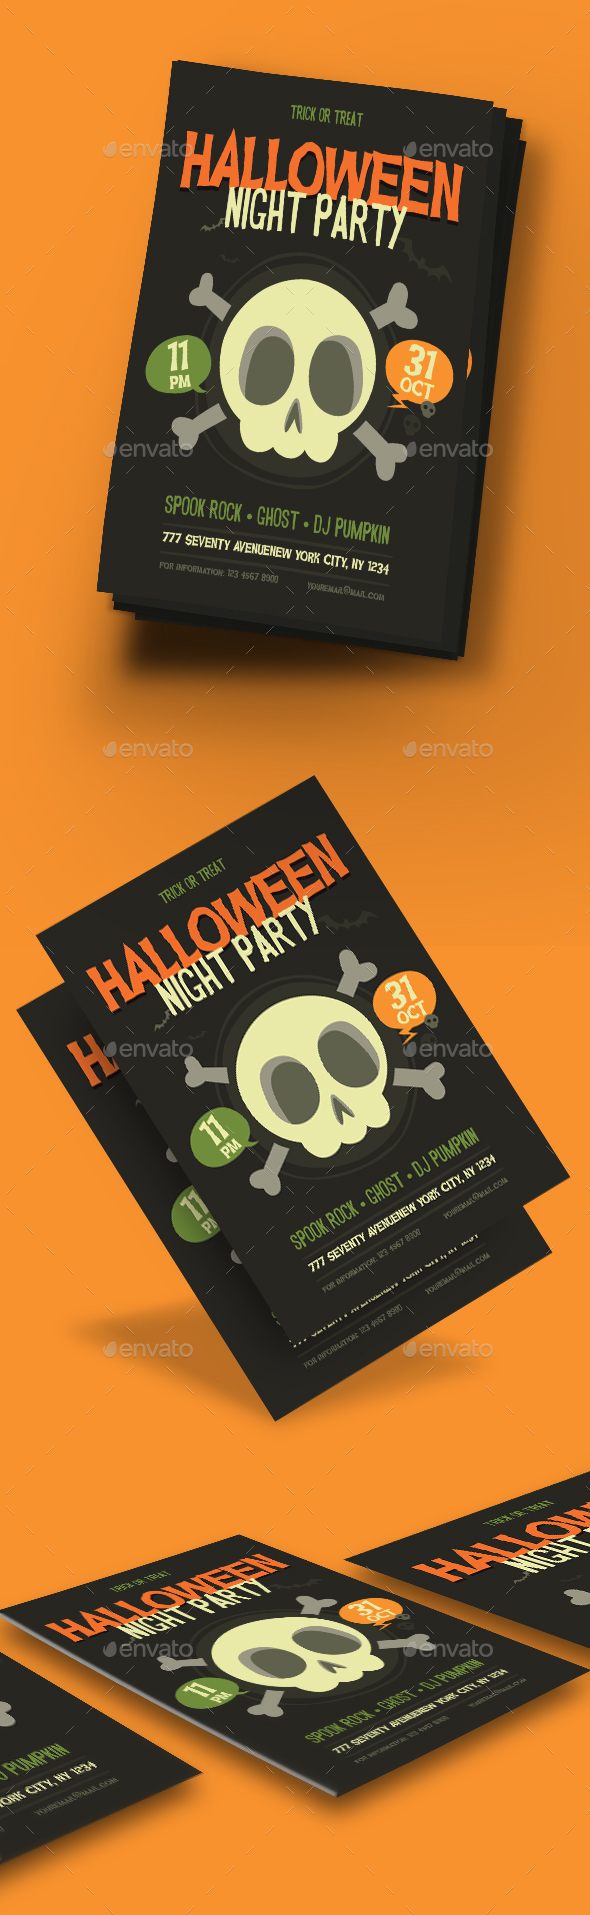 Halloween Flyer - Flyers Print Templates